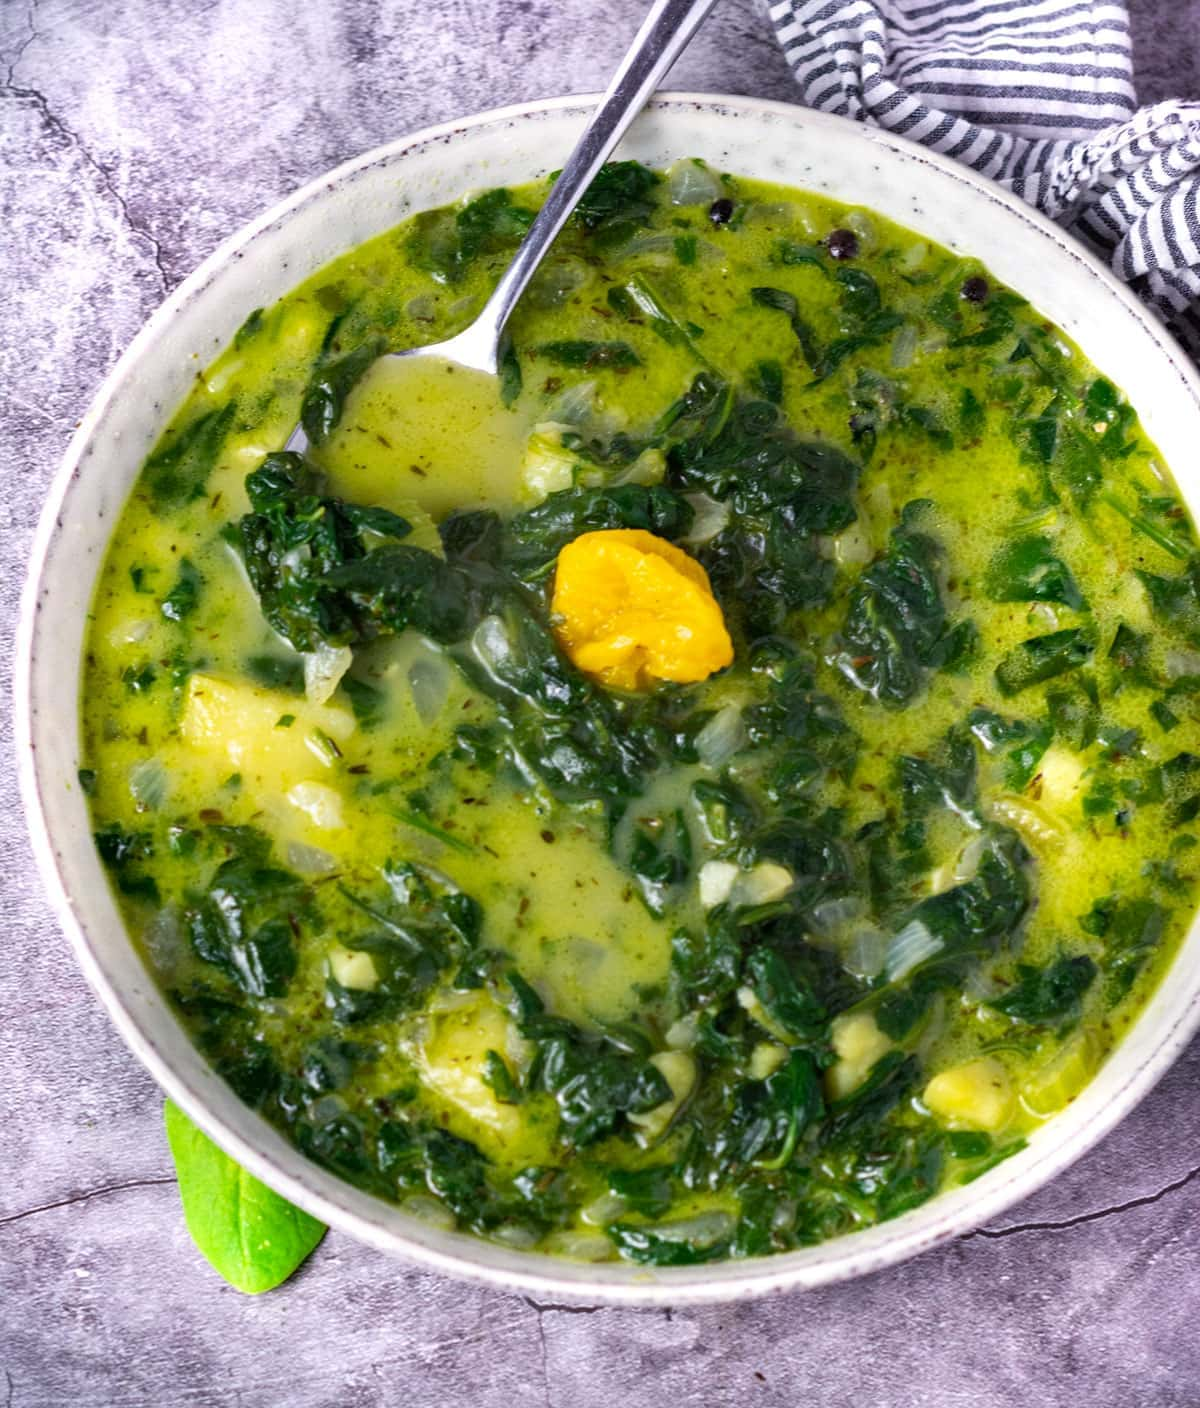 vegan spinach soup with chopped spinach leaves overhead in a beige bowl, overhead on a grey background